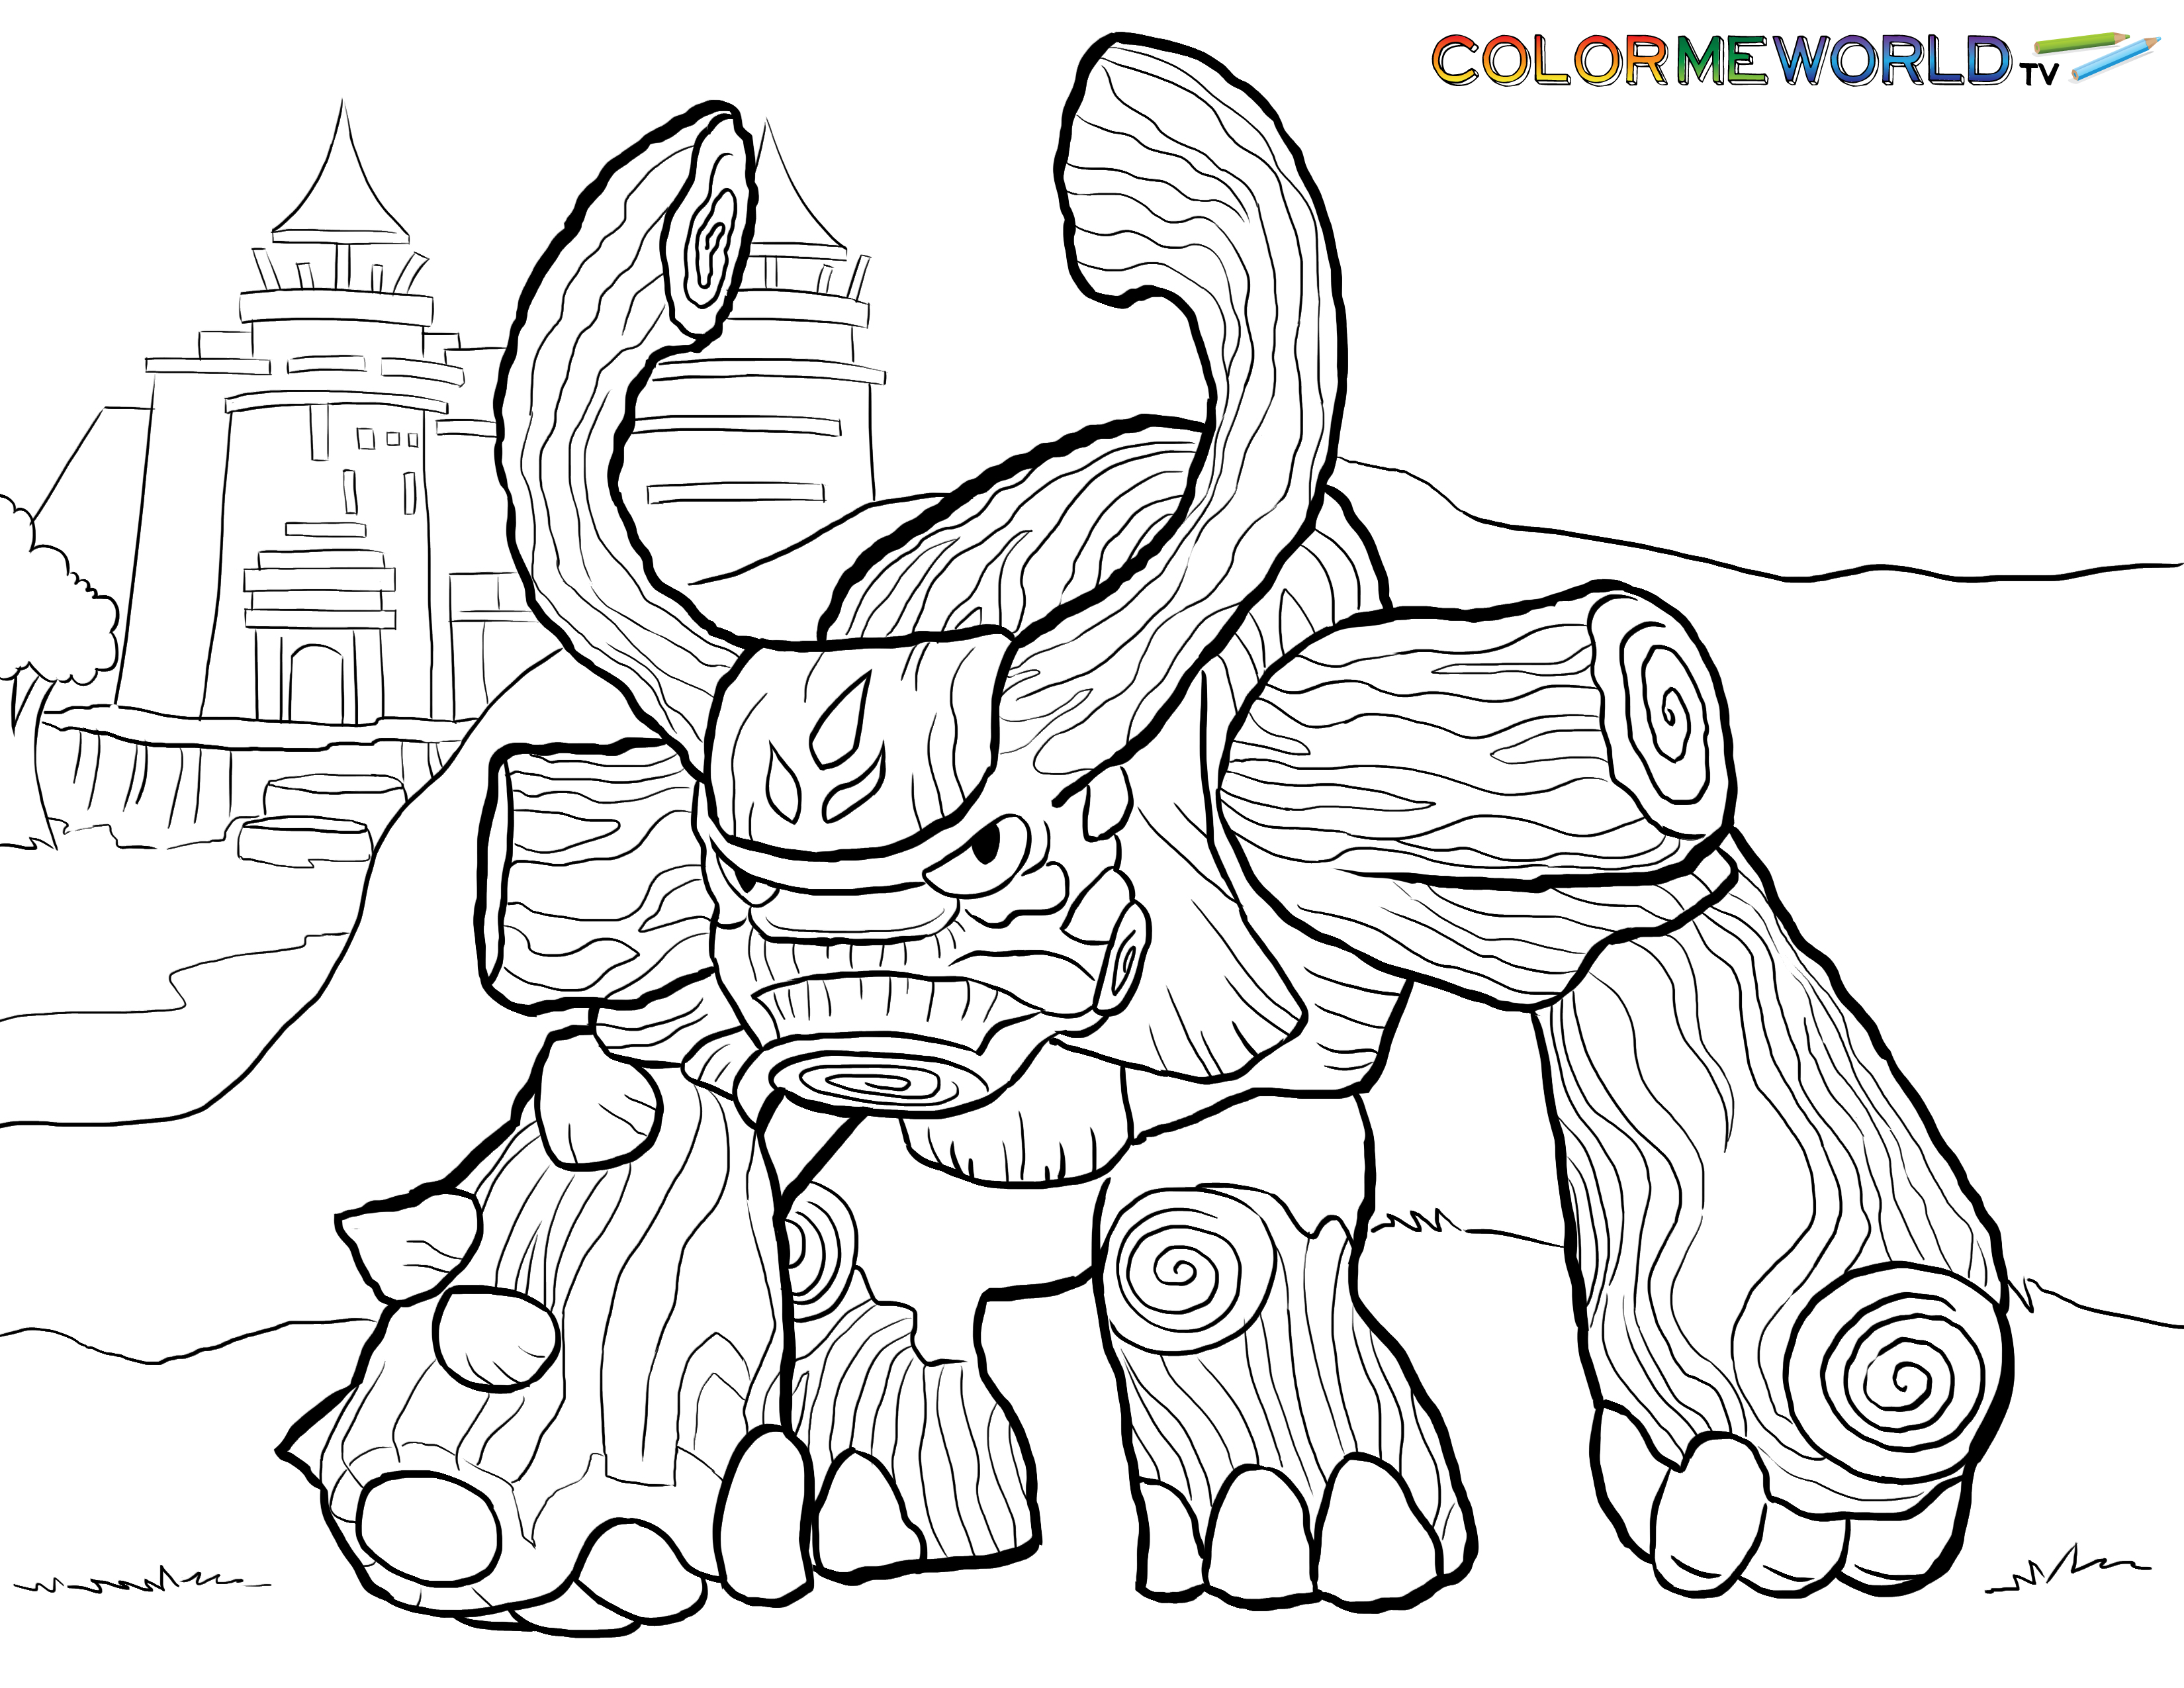 Tree Rex Coloring Page | Cleaning | Coloring pages, Color ...